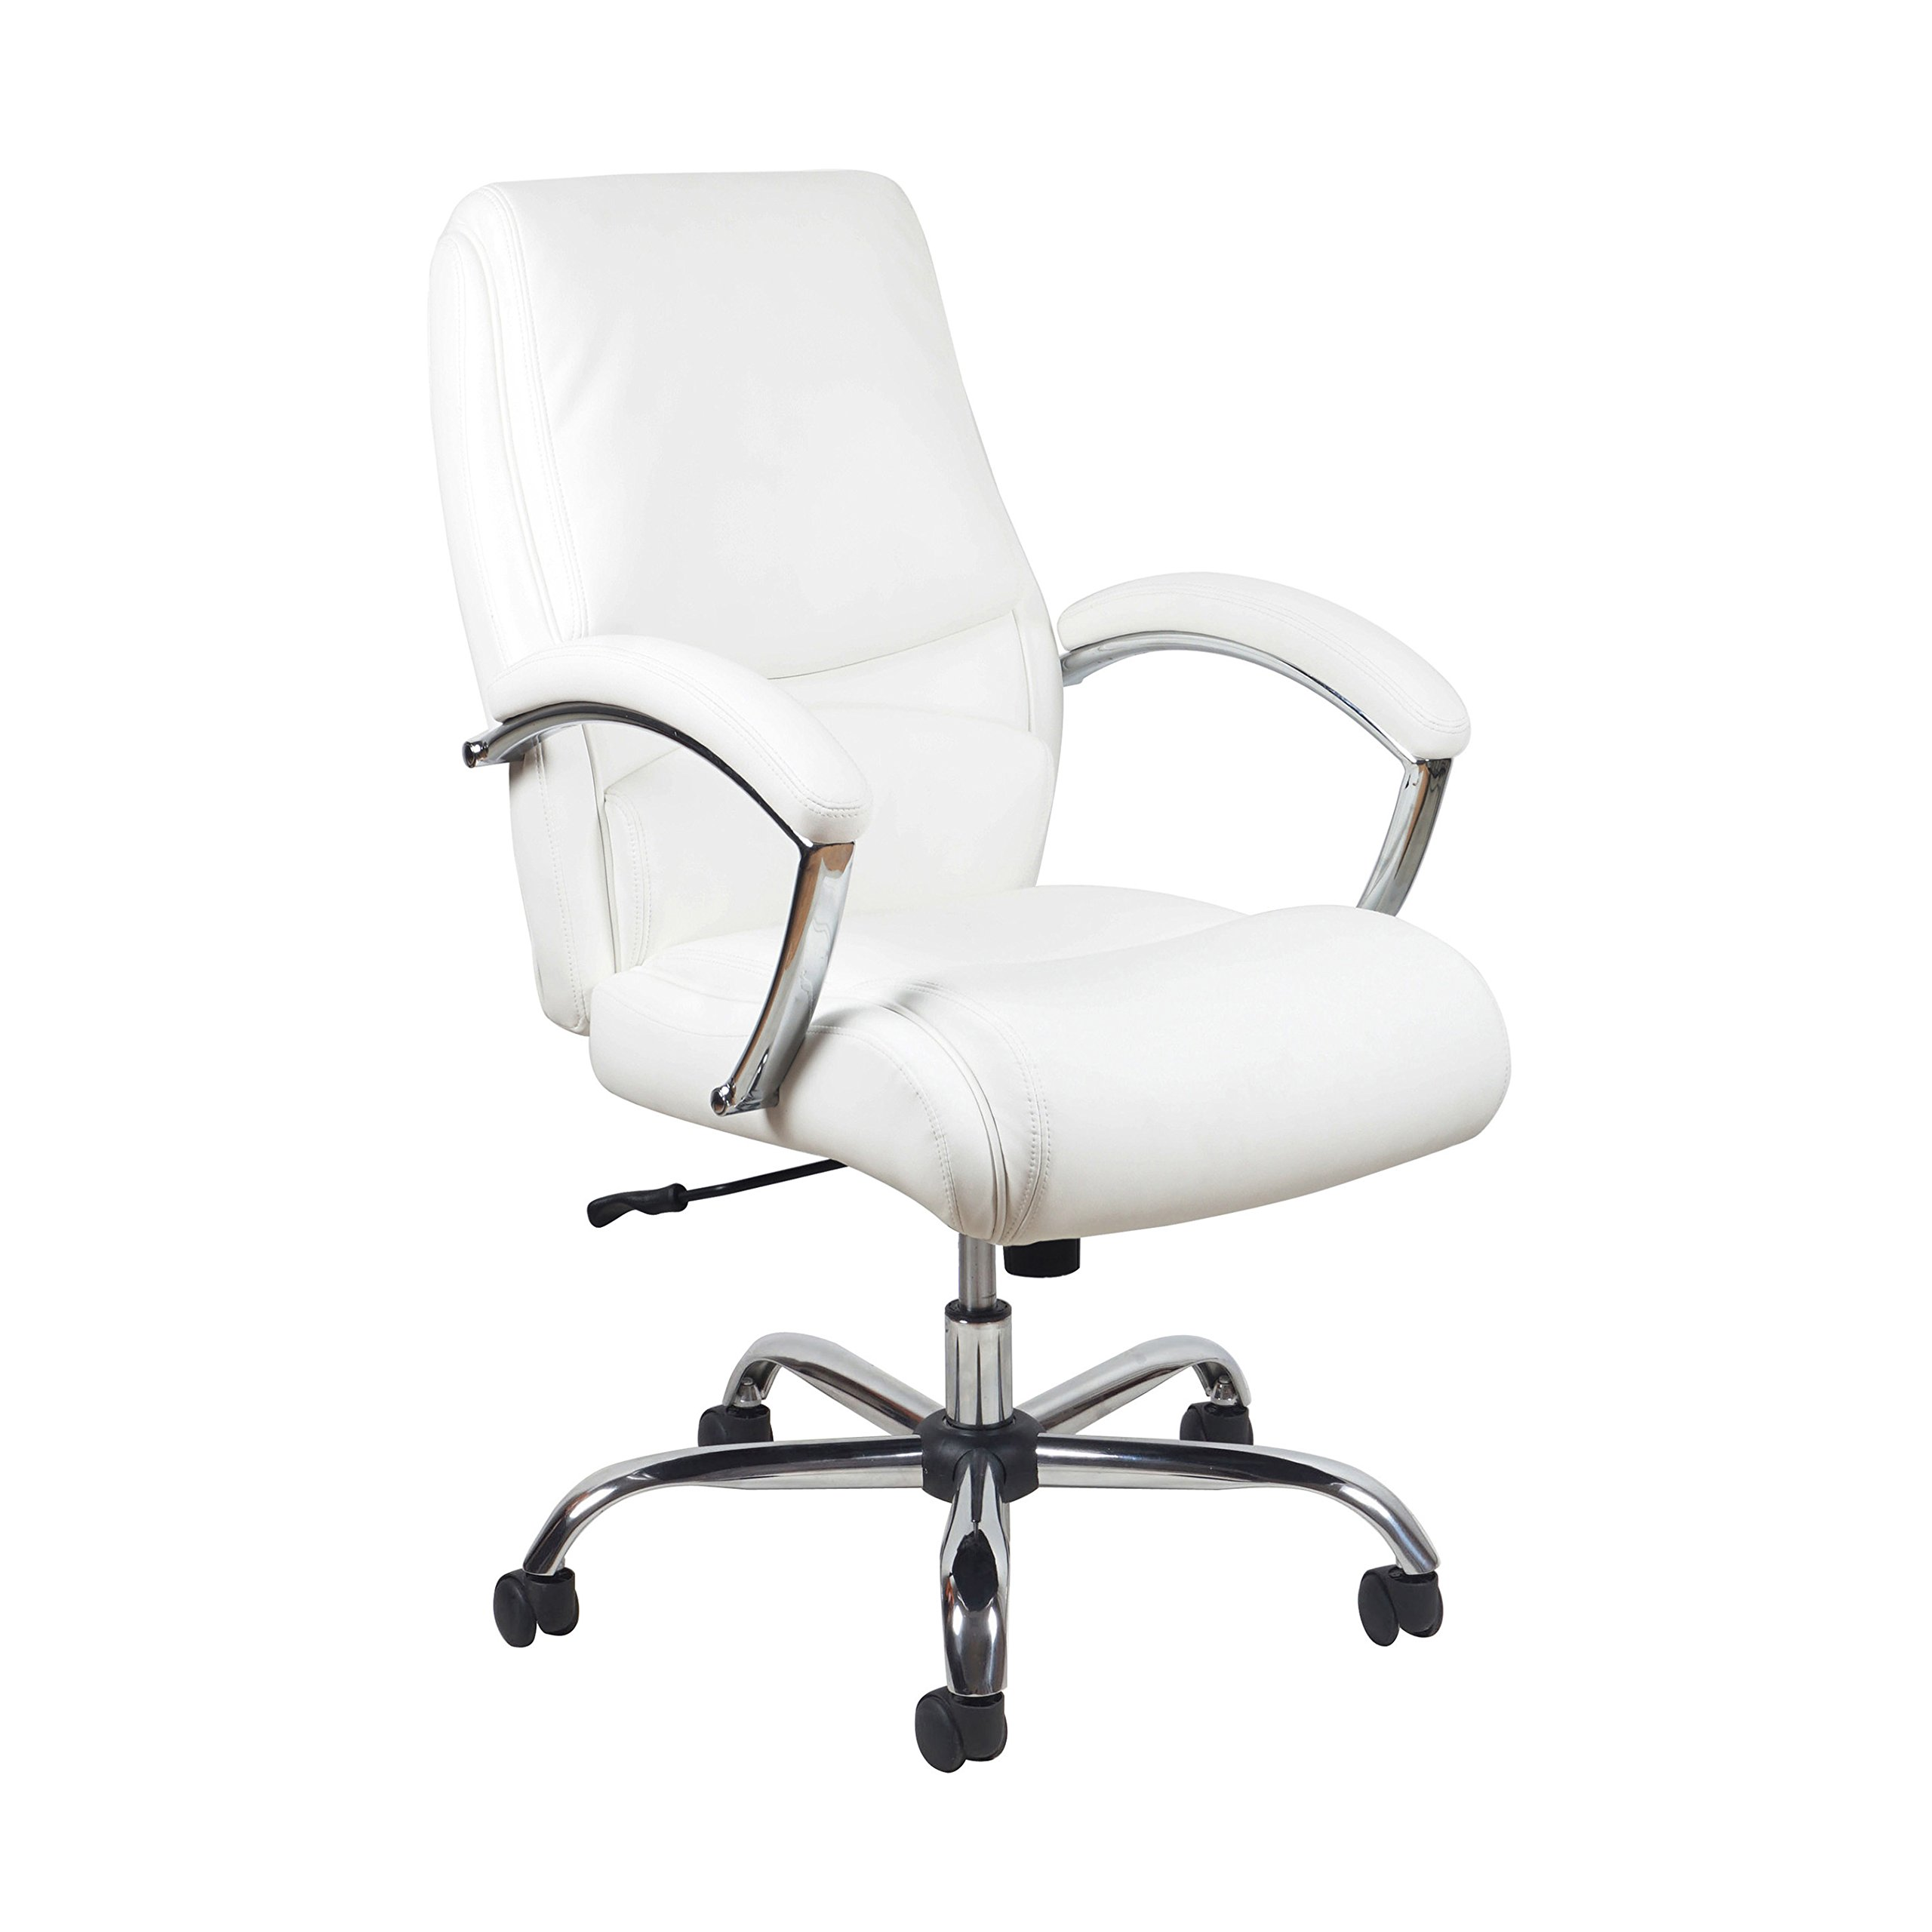 Essentials High-Back Leather Executive Office/Computer Chair with Arms - Ergonomic Adjustable Swivel Chair, White/Chrome (ESS-6070)